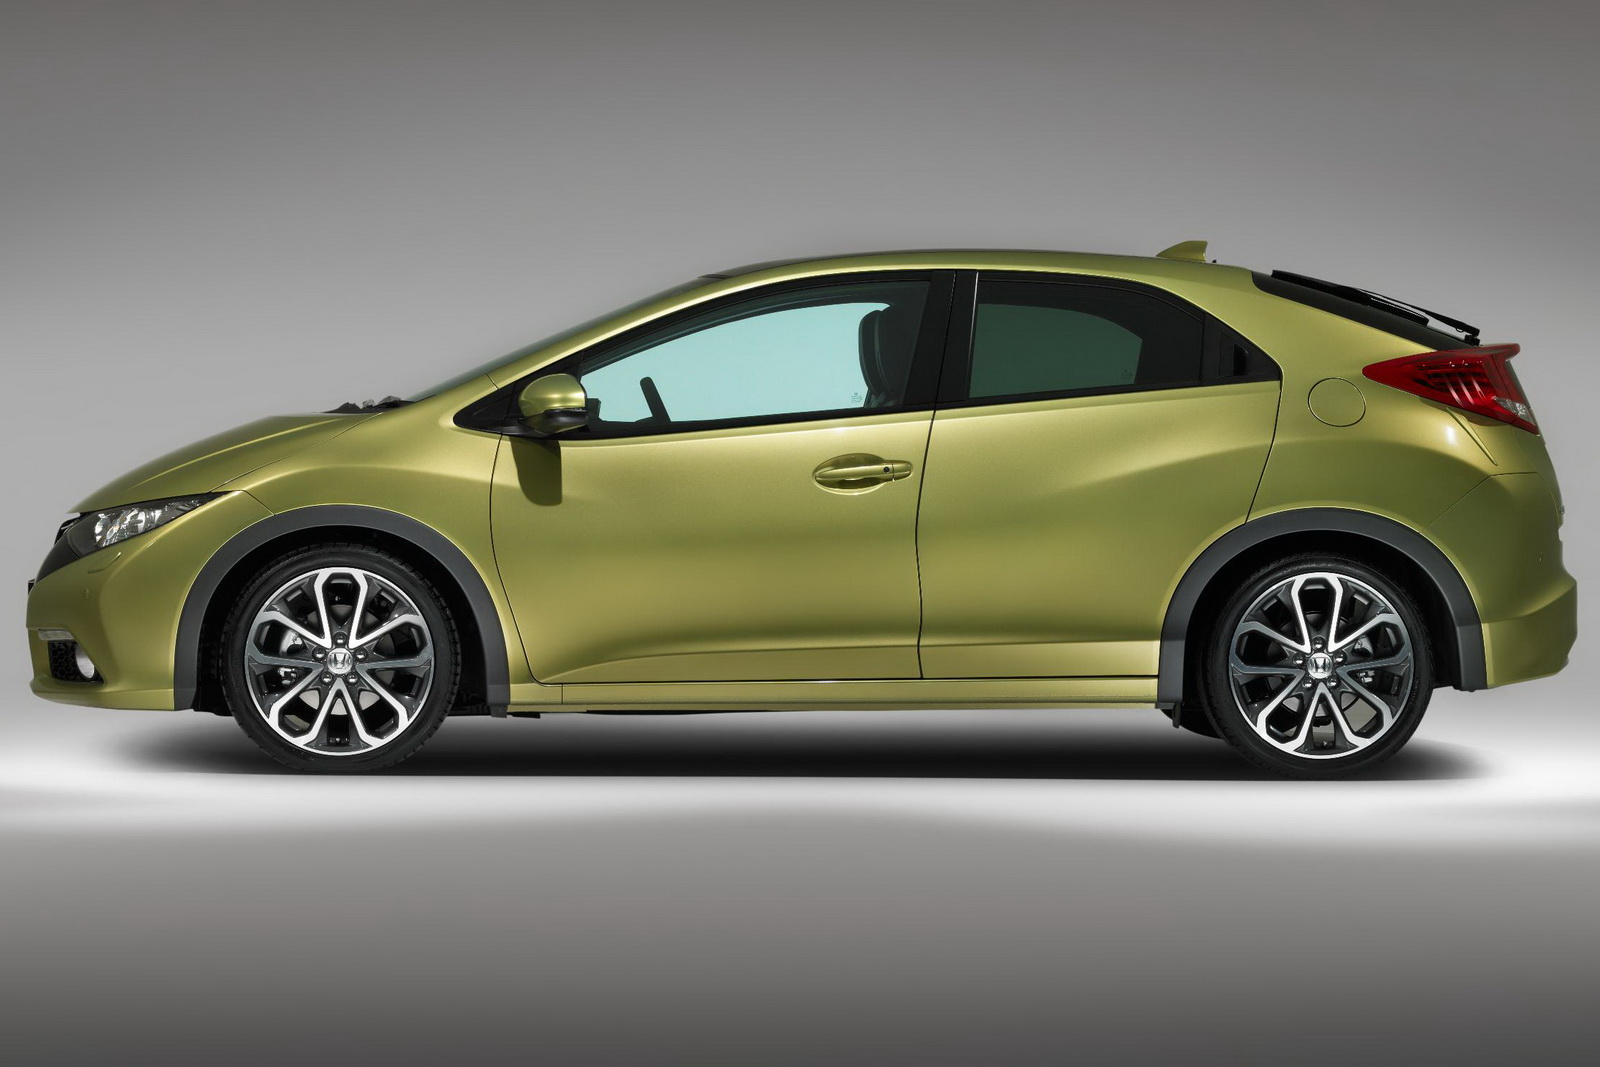 hight resolution of new 2012 honda civic hatchback priced from 16 495 in the uk